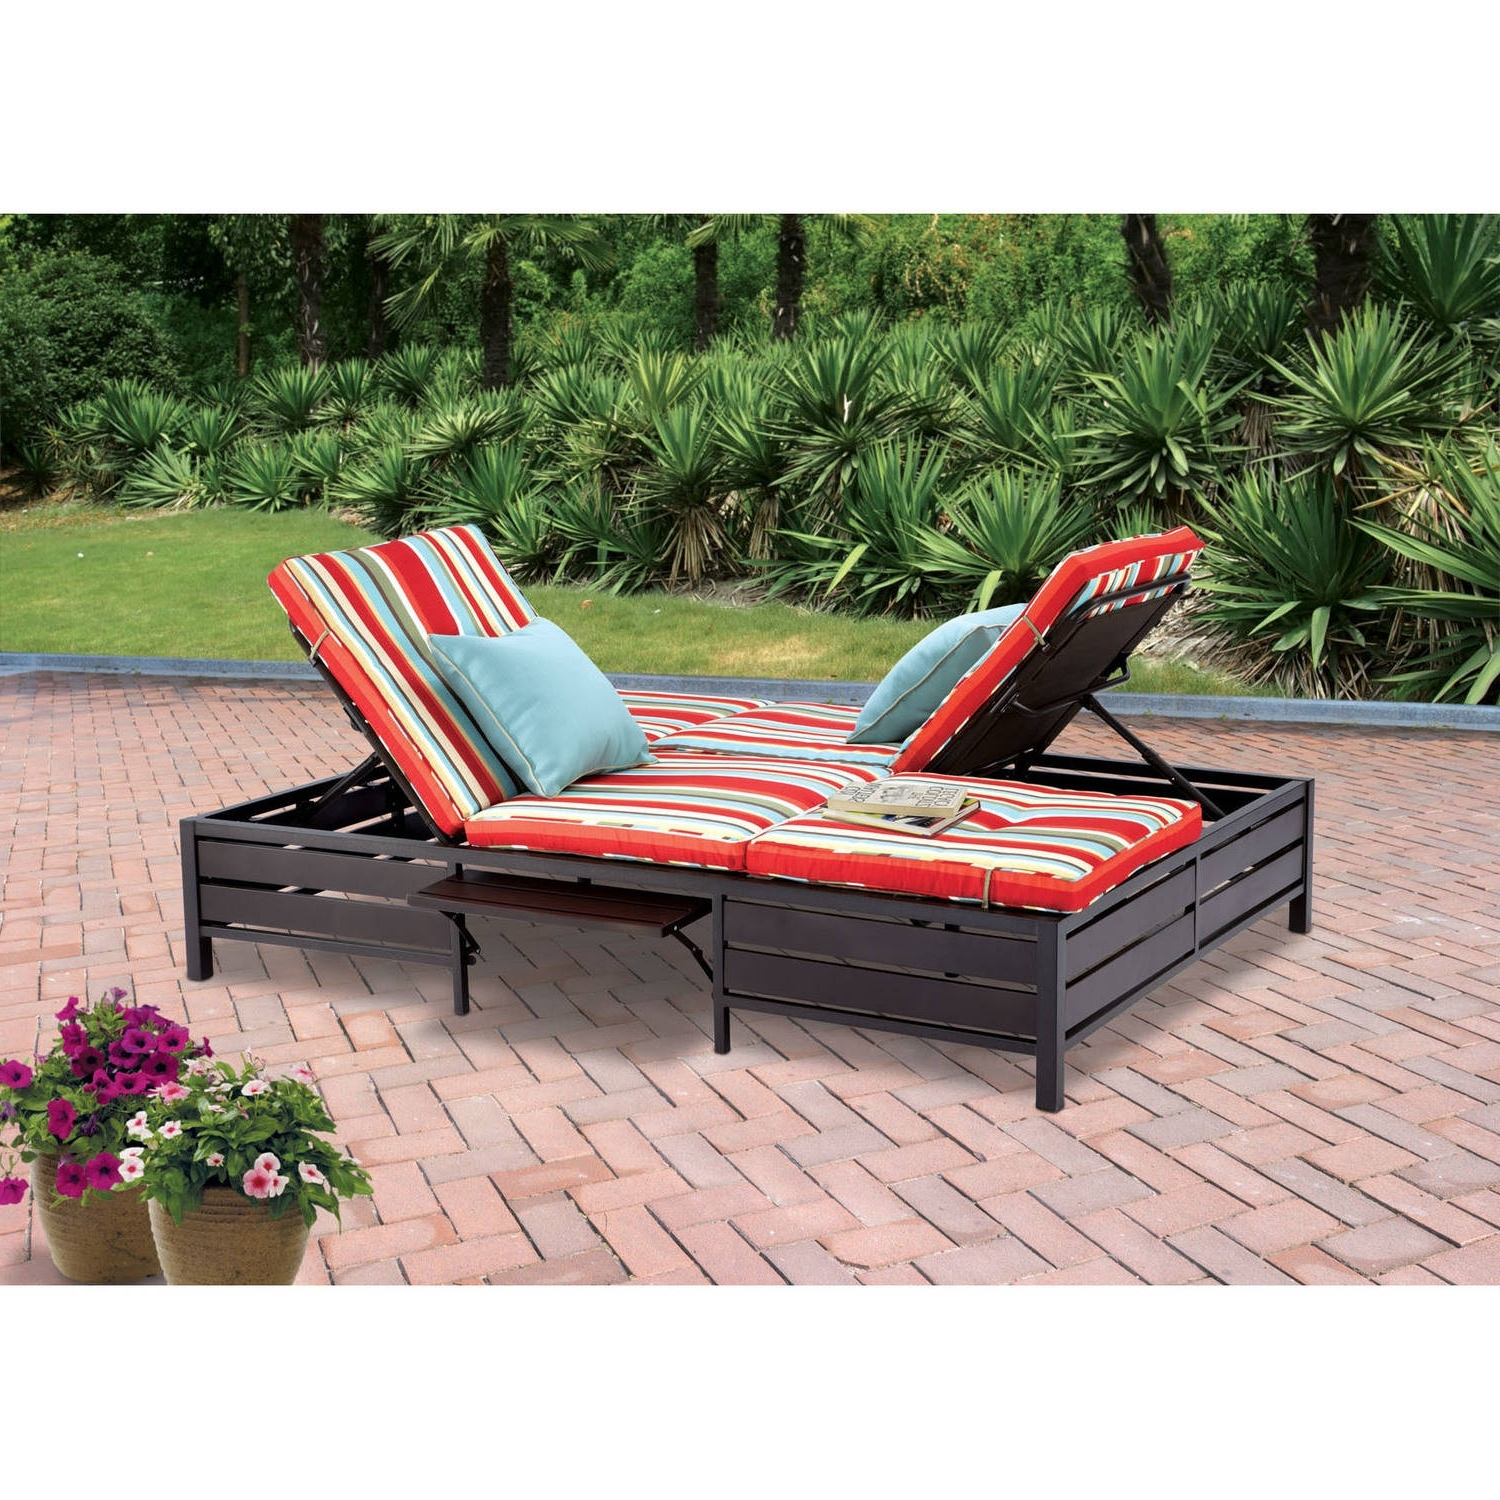 Mainstays Outdoor Double Chaise Lounger, Stripe, Seats 2 – Walmart With Regard To Most Recently Released Walmart Chaises (View 5 of 15)